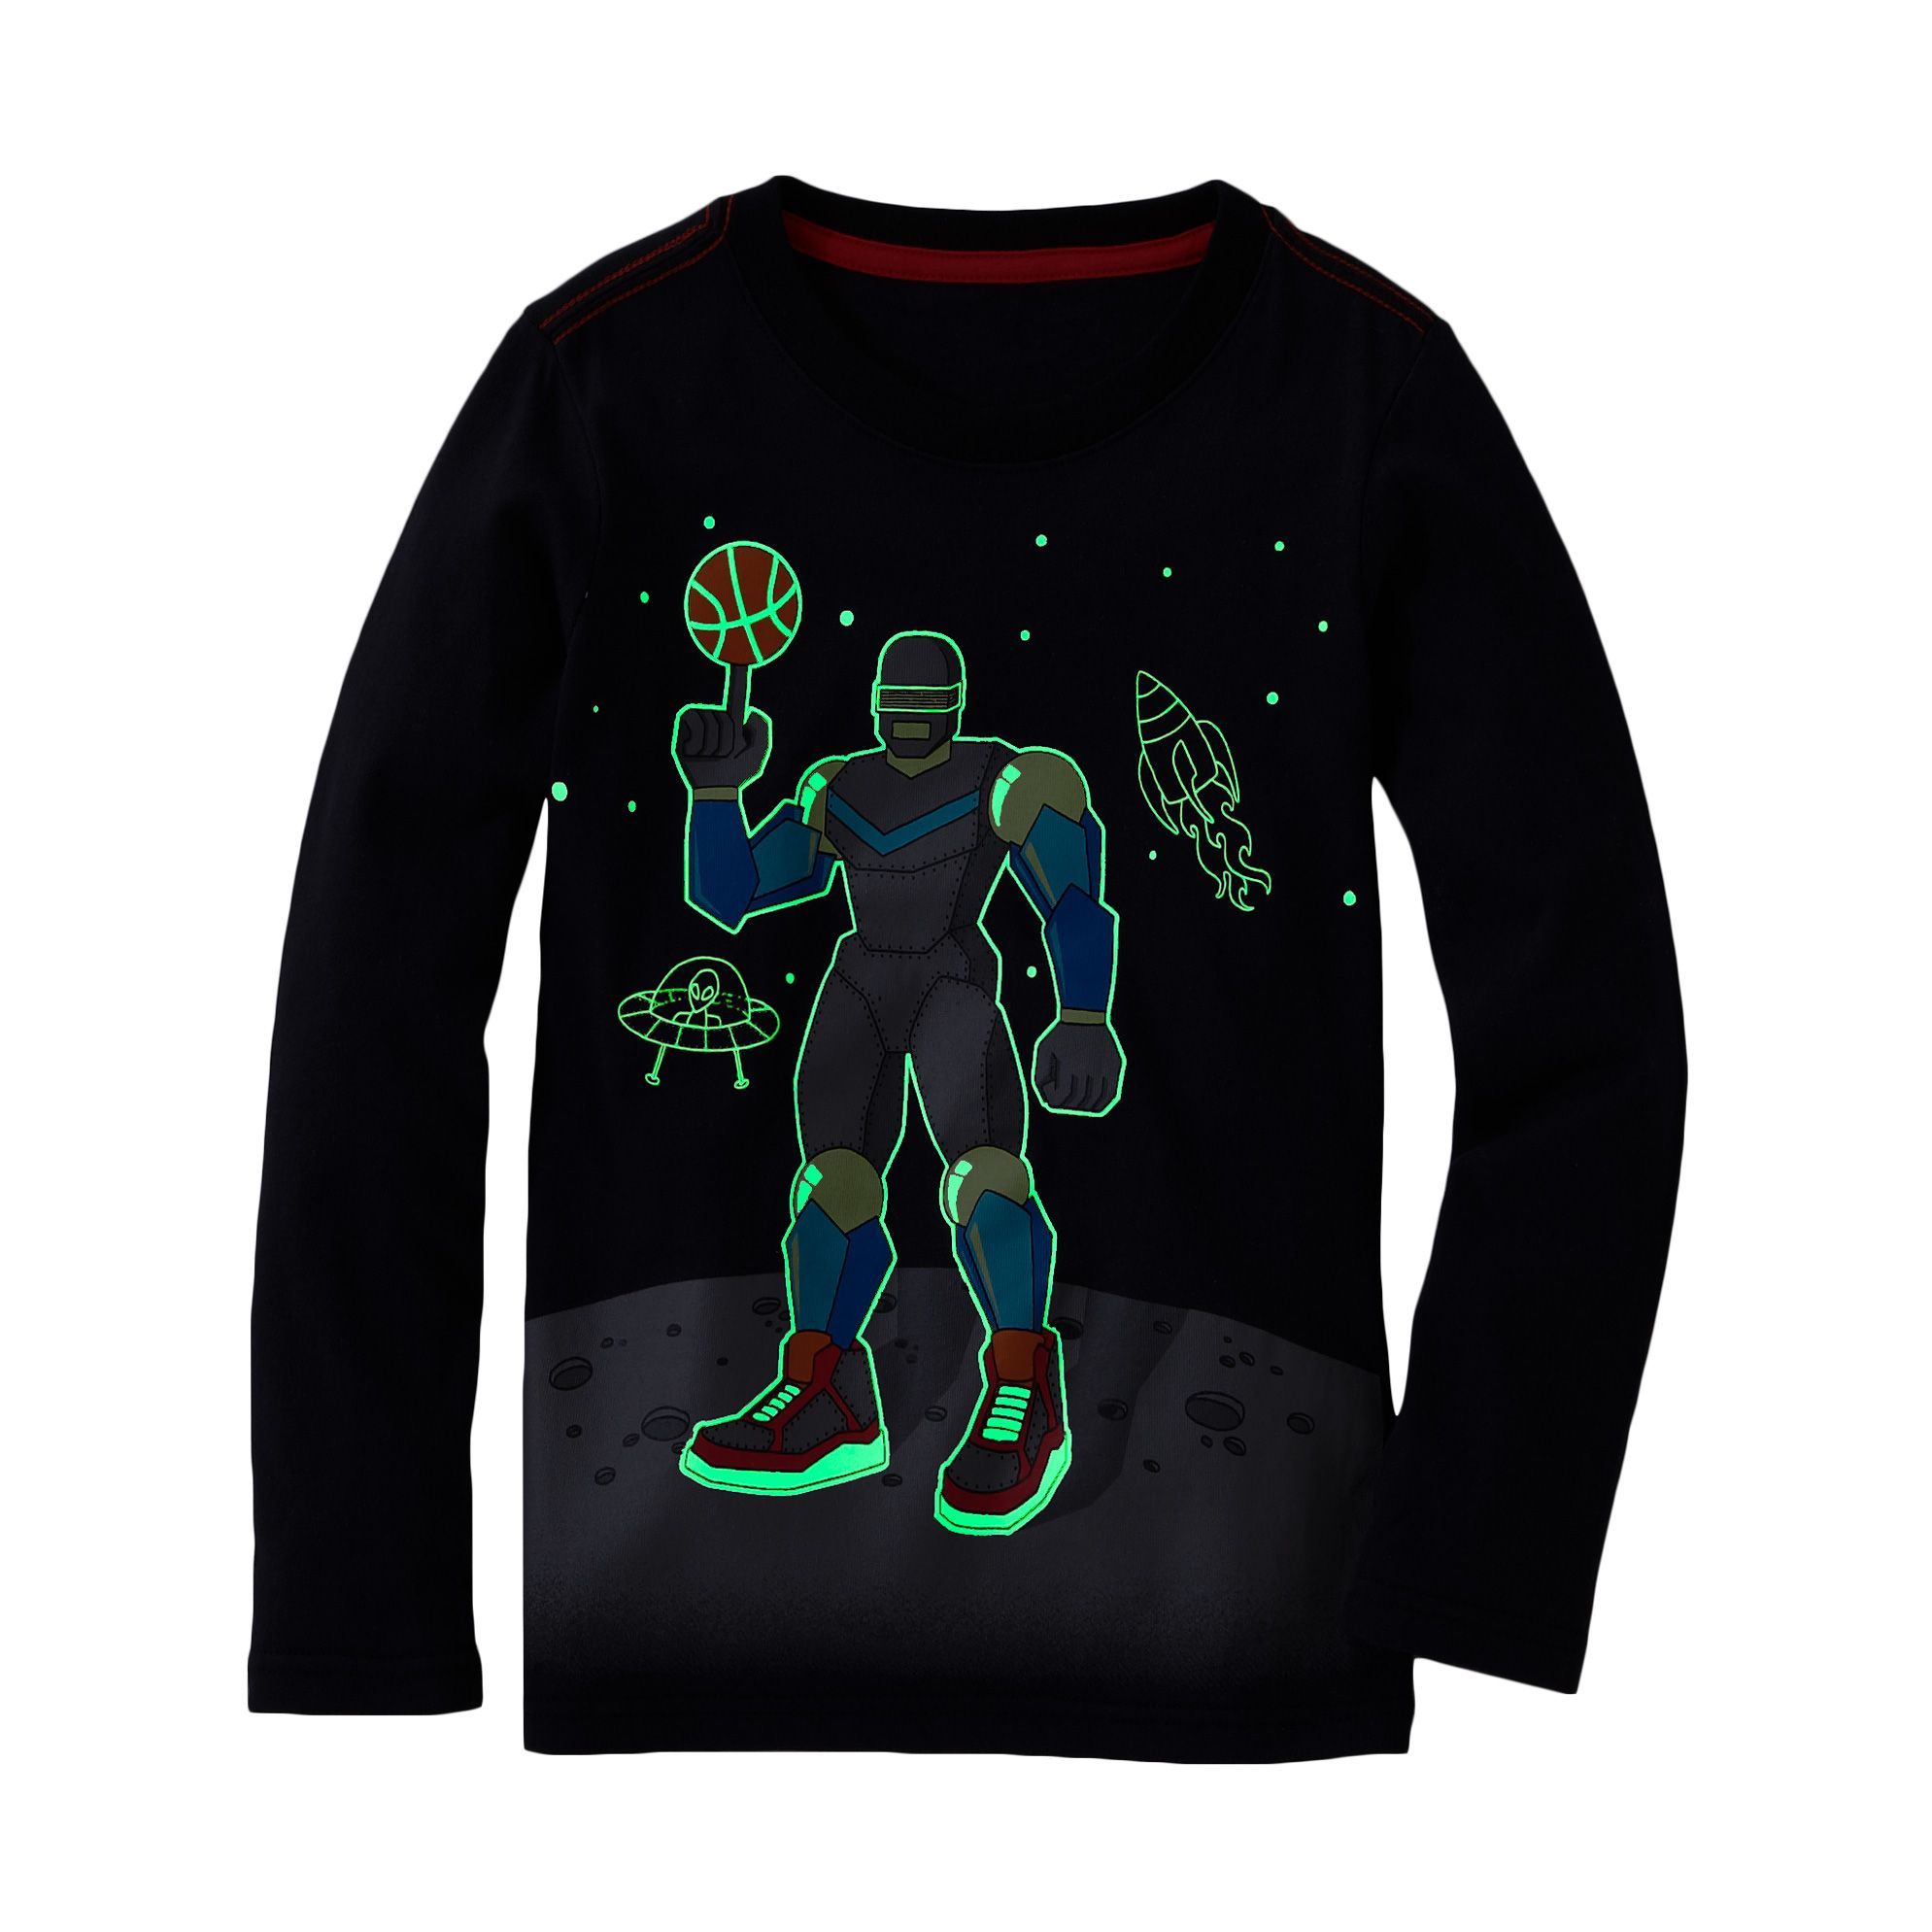 Glow in the Dark Graphic Tee